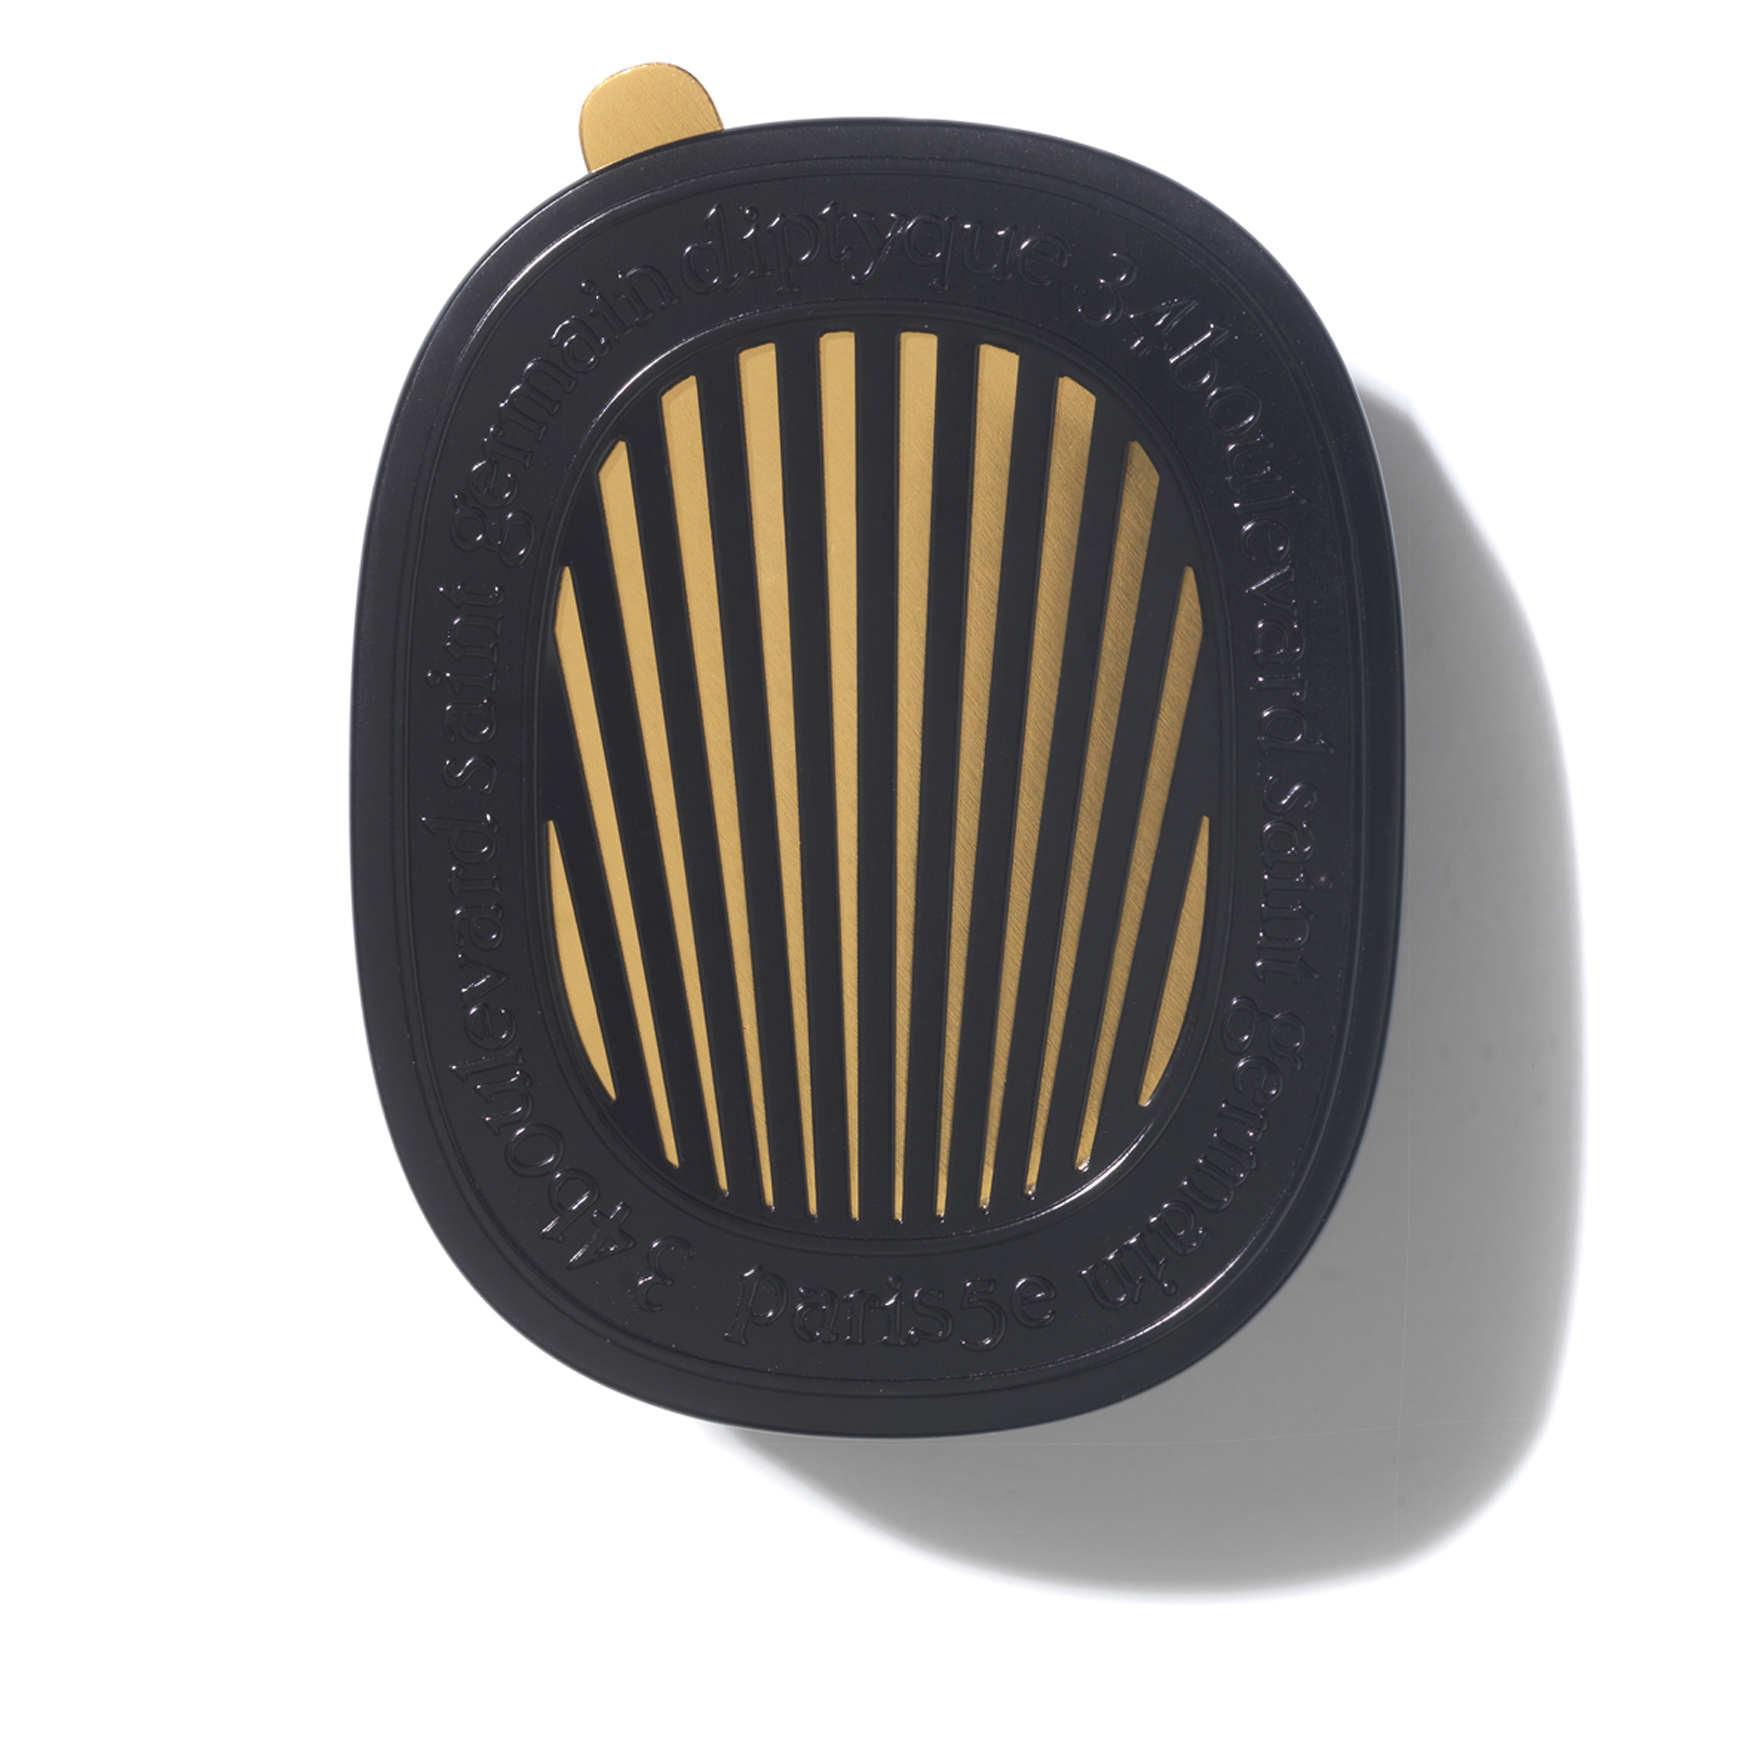 Car Diffuser And Baies Scented Insert, , large